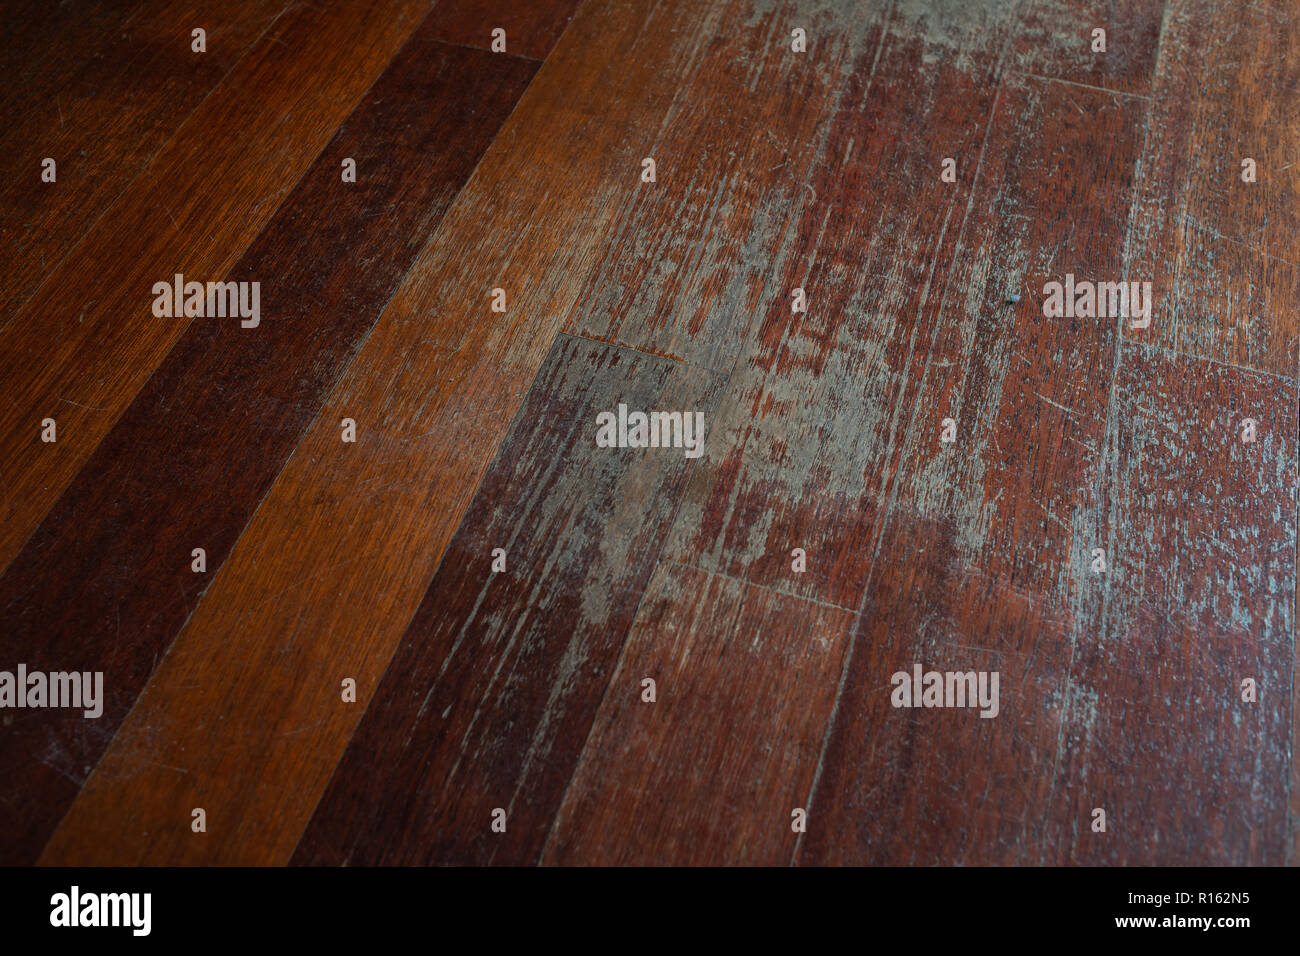 Old Scratched Hardwood Flooring In Need Of Maintenance